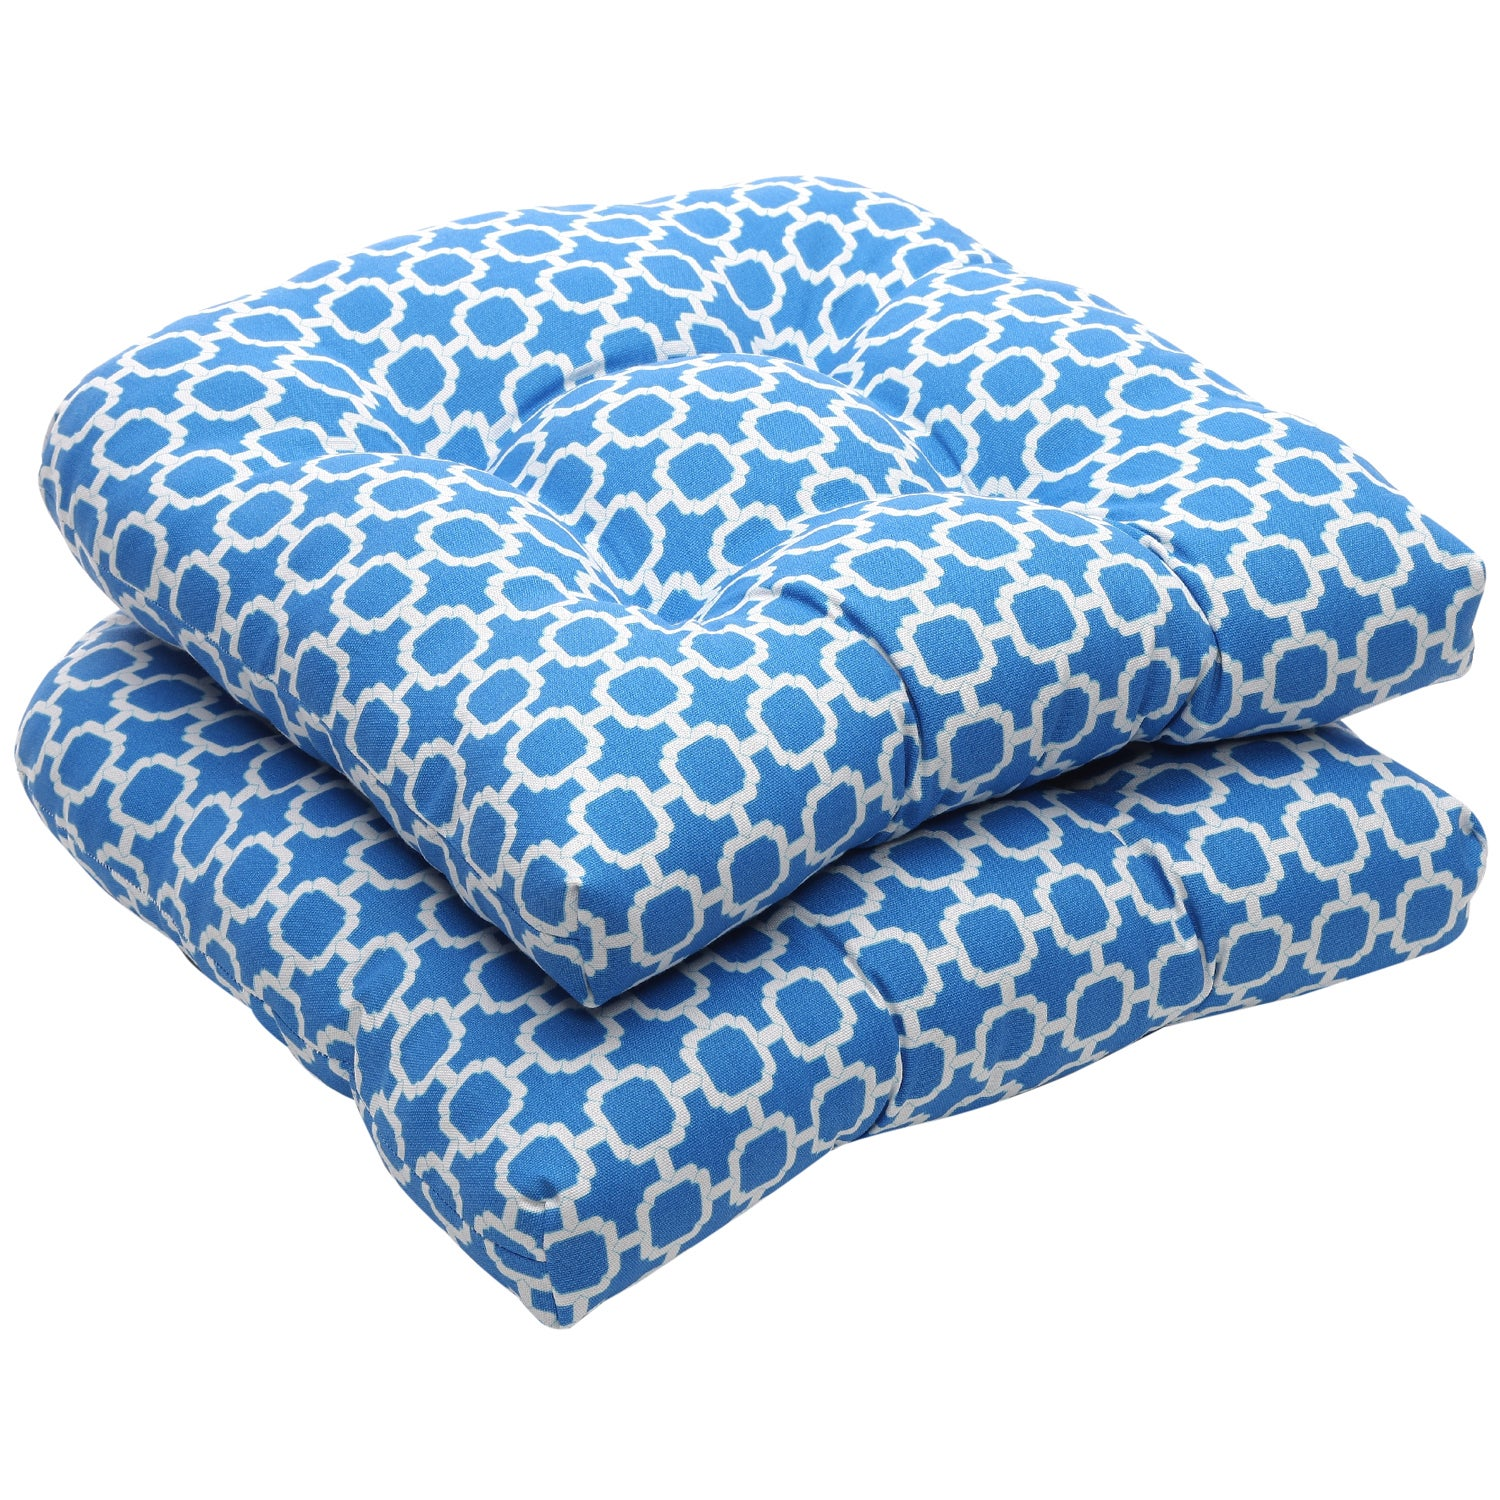 Outdoor Blue and White Geometric Wicker Seat Cushions Set